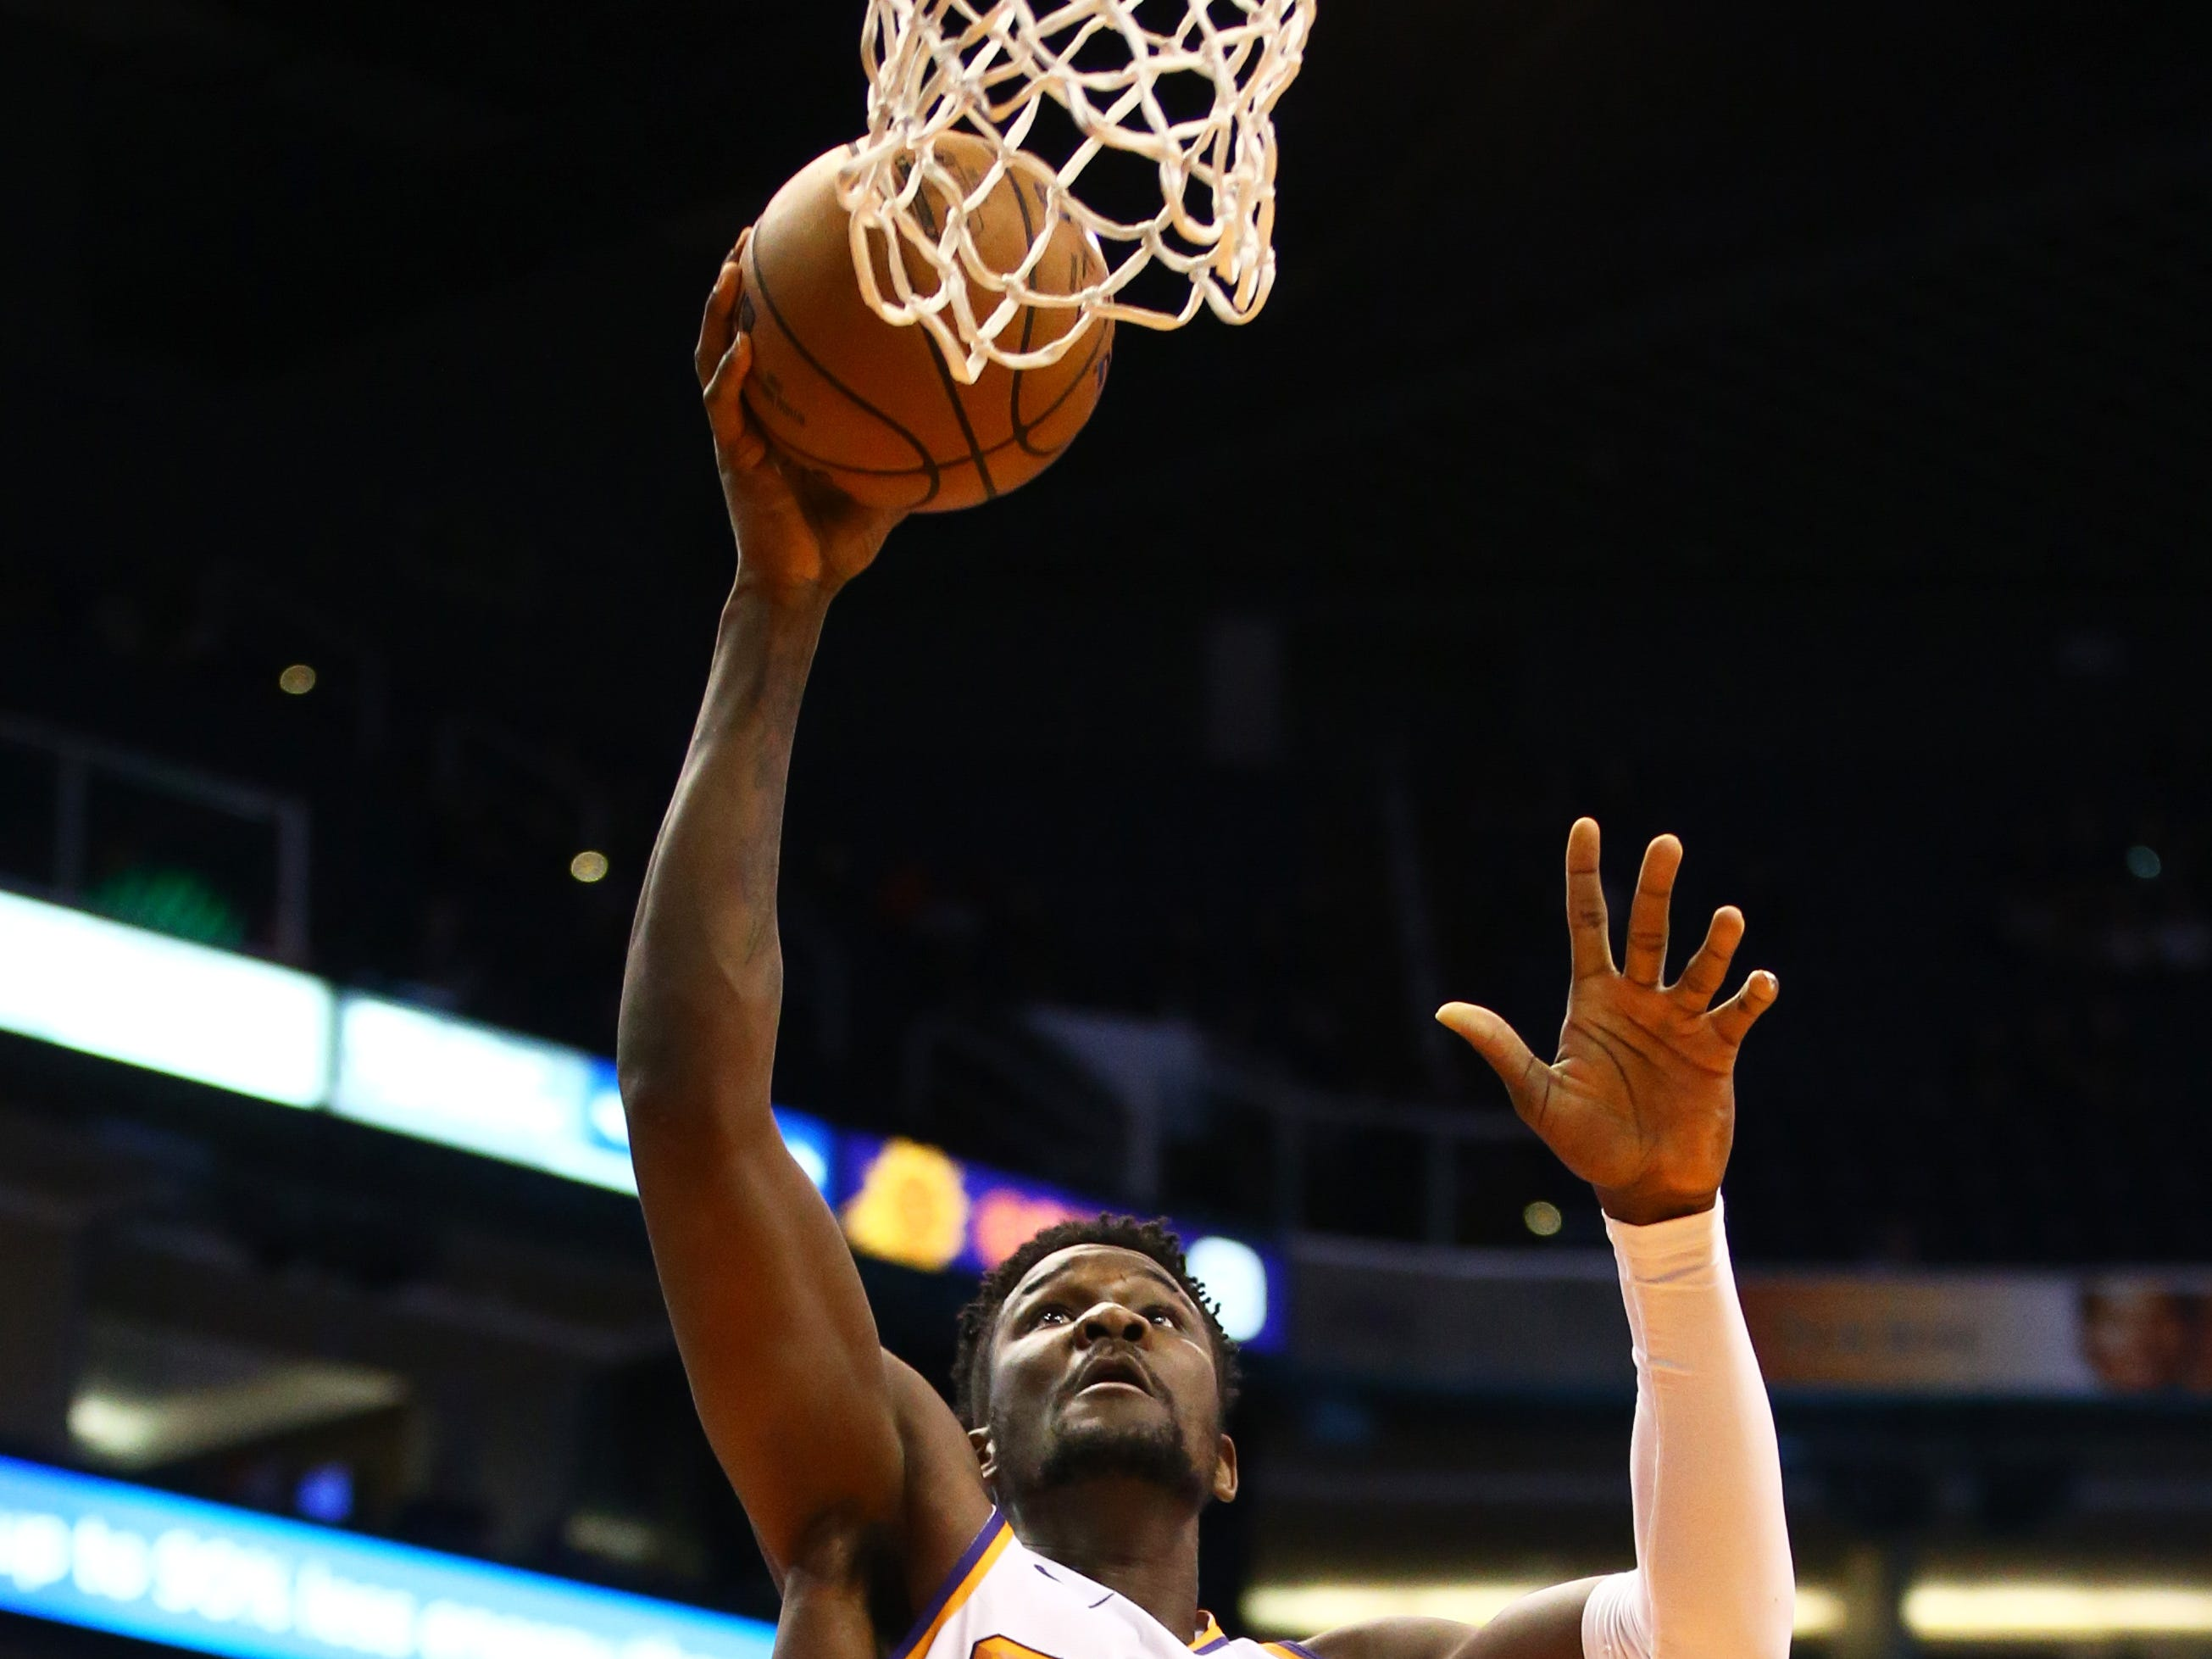 Dec 4, 2018; Phoenix, AZ, USA; Phoenix Suns center Deandre Ayton (22) against the Sacramento Kings in the first half at Talking Stick Resort Arena. Mandatory Credit: Mark J. Rebilas-USA TODAY Sports